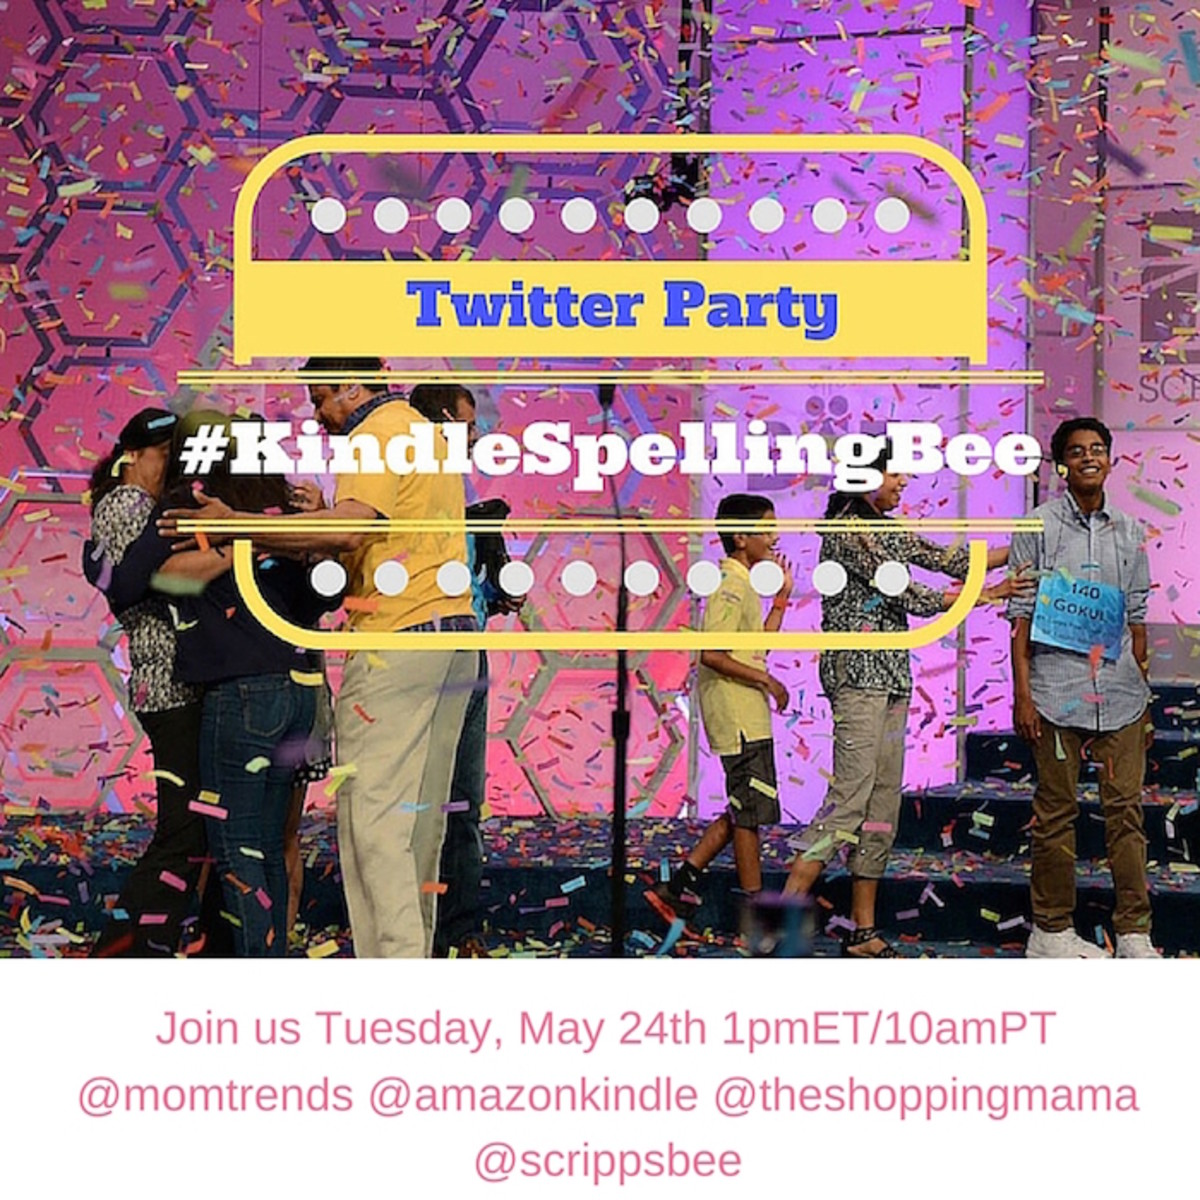 twitter party announcement